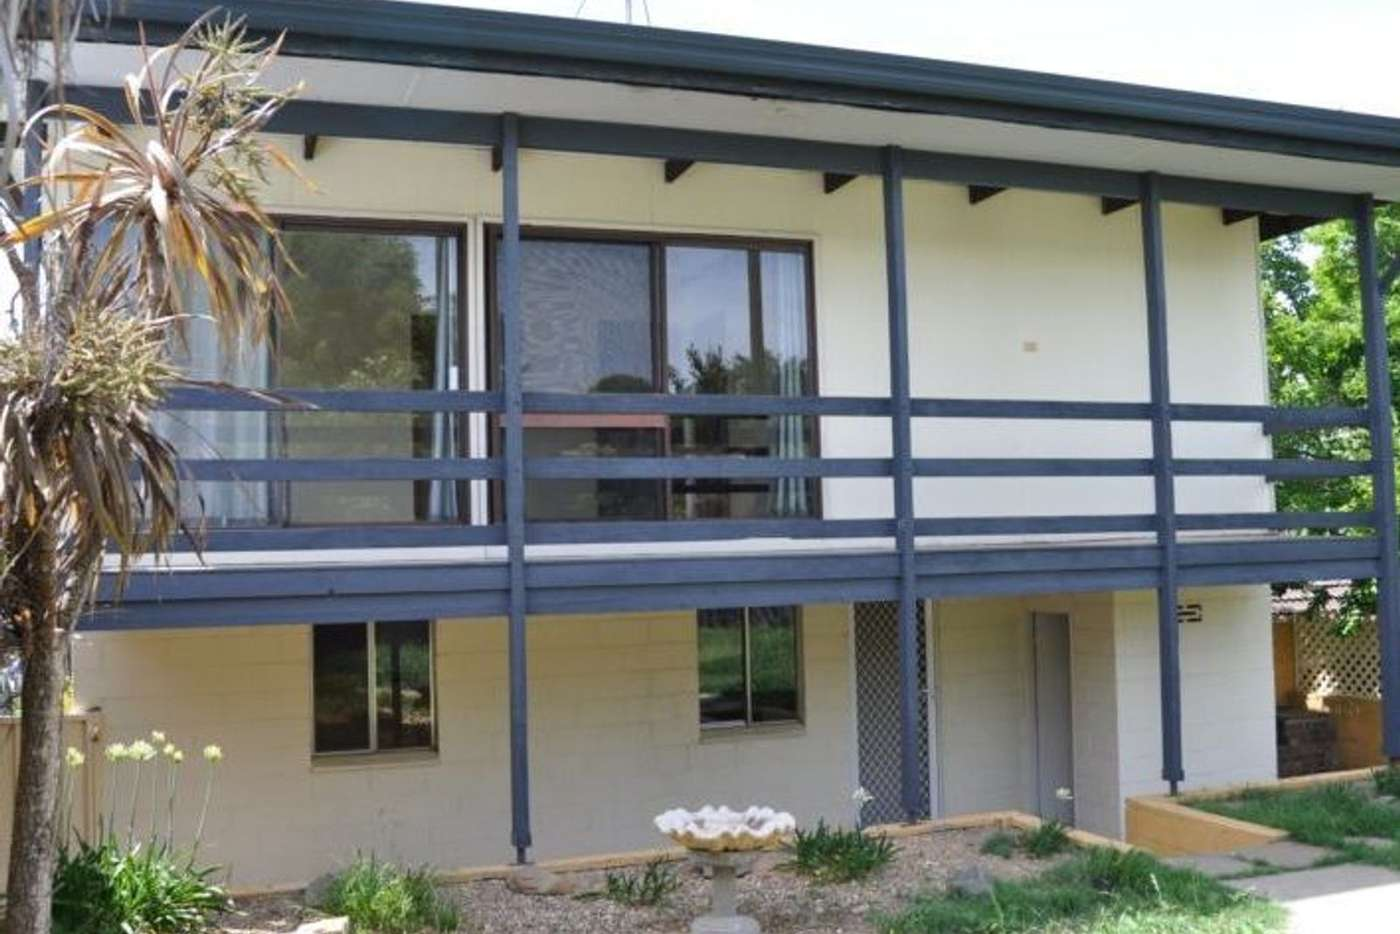 Main view of Homely house listing, 1A Banks Street, Bathurst NSW 2795